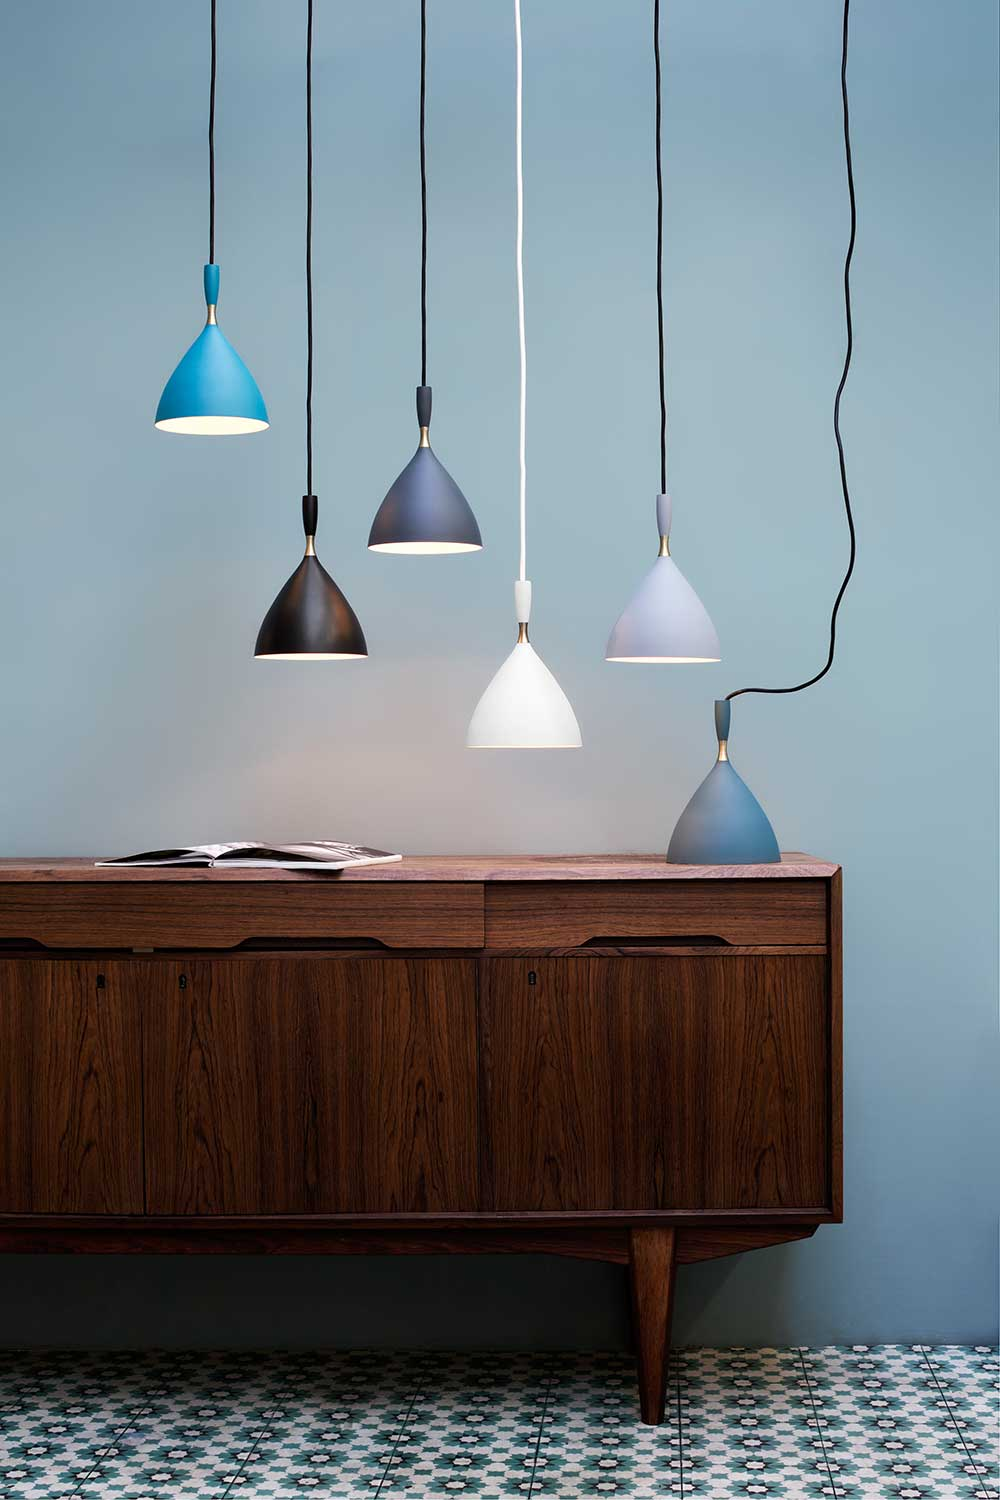 Dokka lamp by Northern Lighting | Flodeau.com #MDW2015